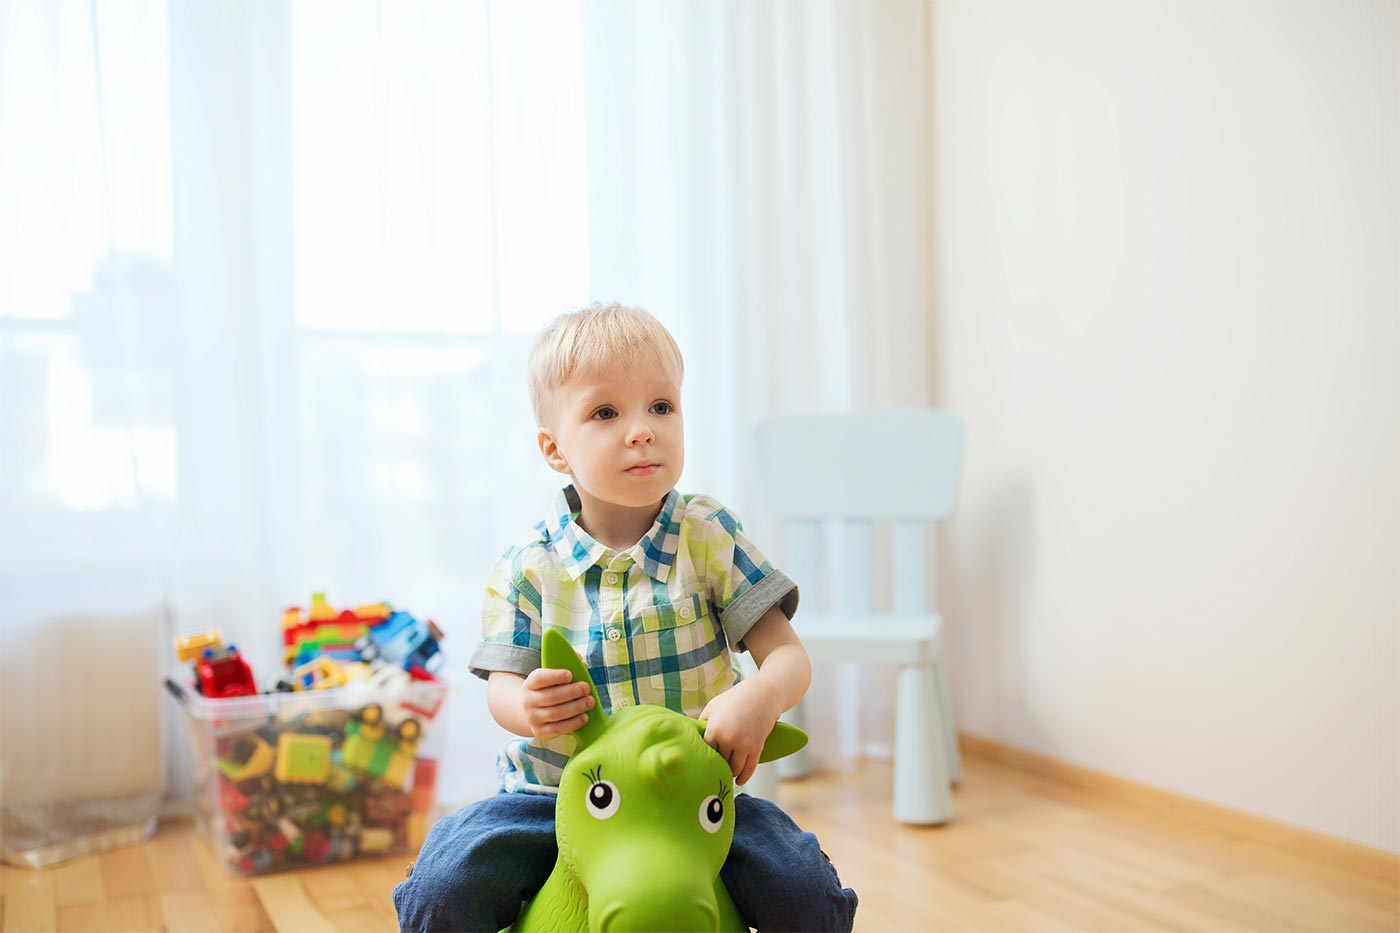 Boy sitting on an inflatable green toy, holding onto the toy's ears, in a play room